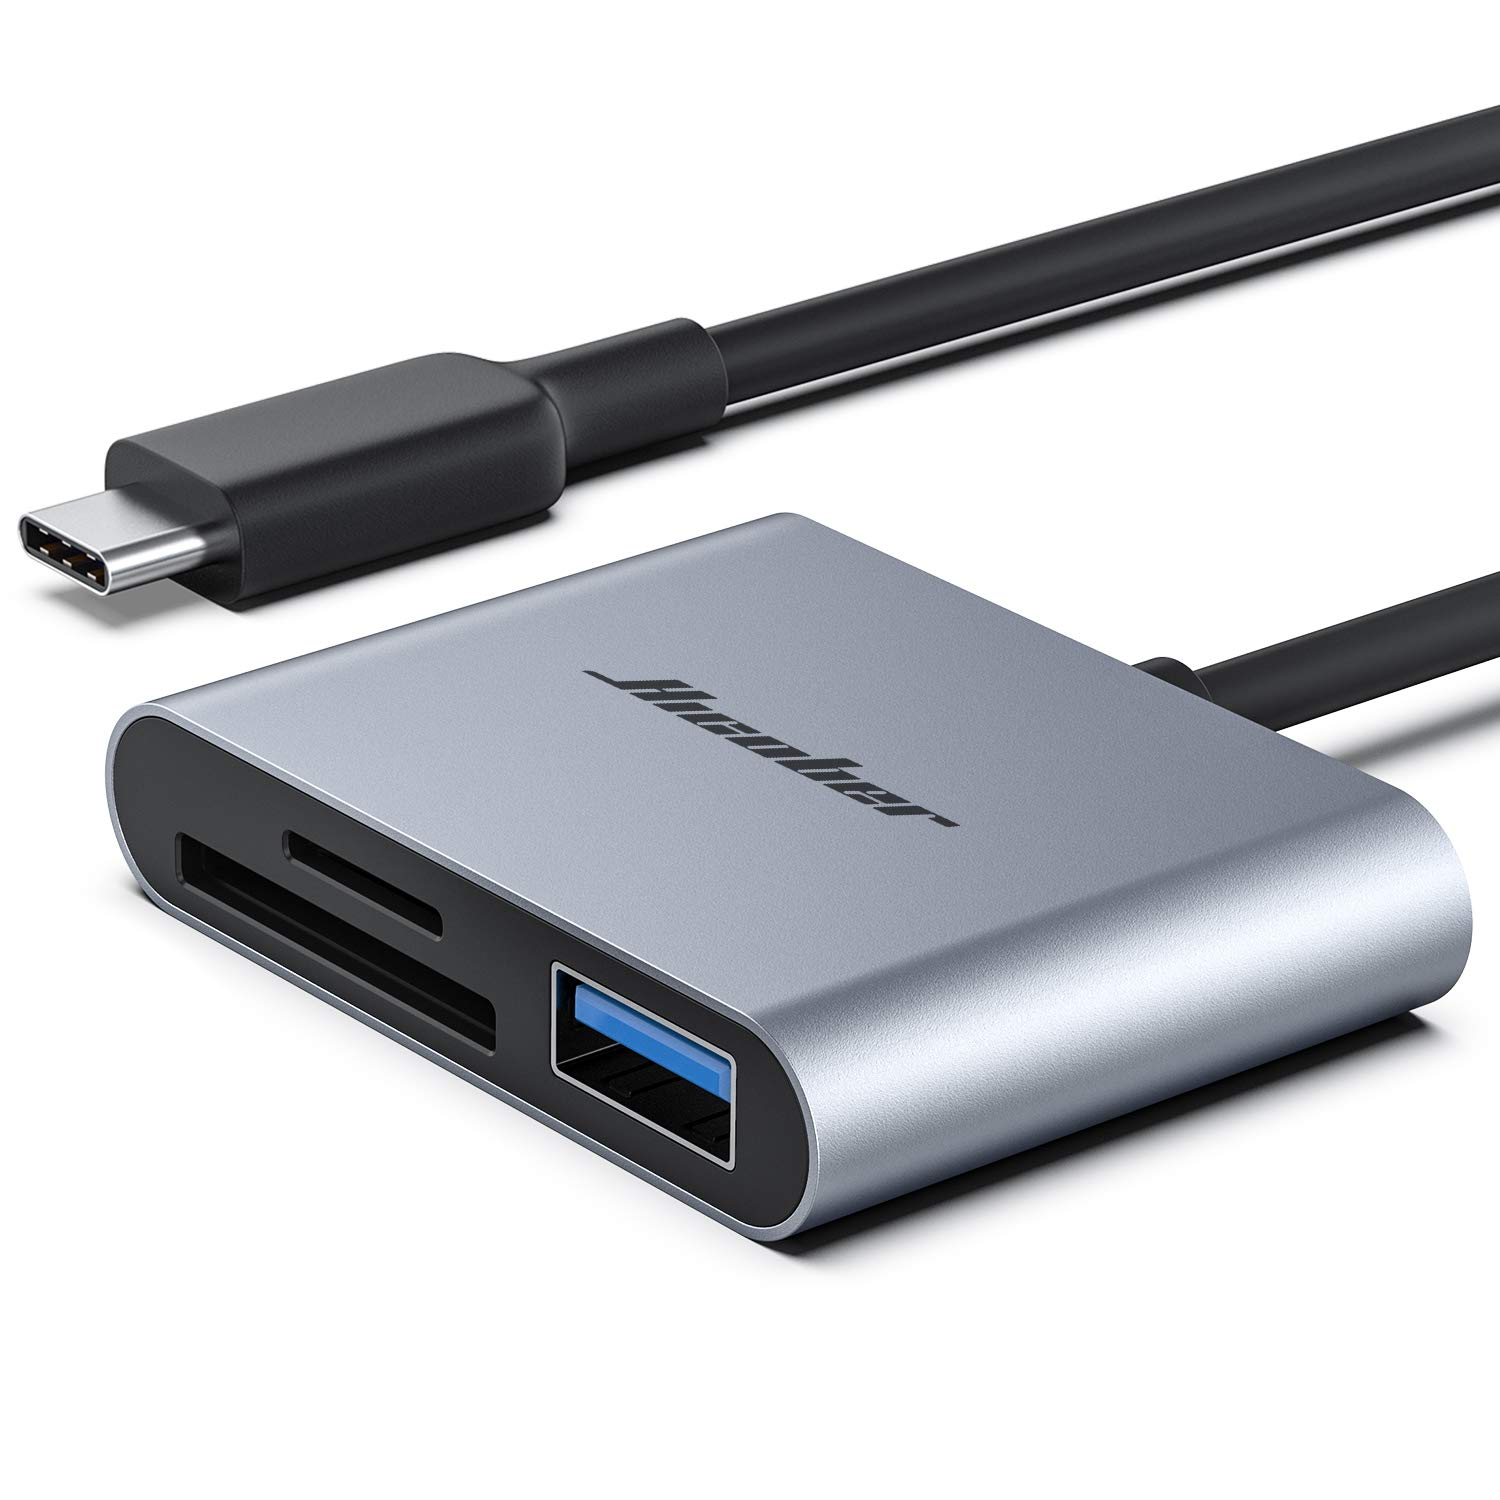 Hicober USB C to SD Card Reader, Micro SD Memory Card Reader, Type C to SD Card Reader Adapter 2TB Capacity for MacBook CameraAndroid Windows Linux and Other Type C Device-Space Grey by Hicober